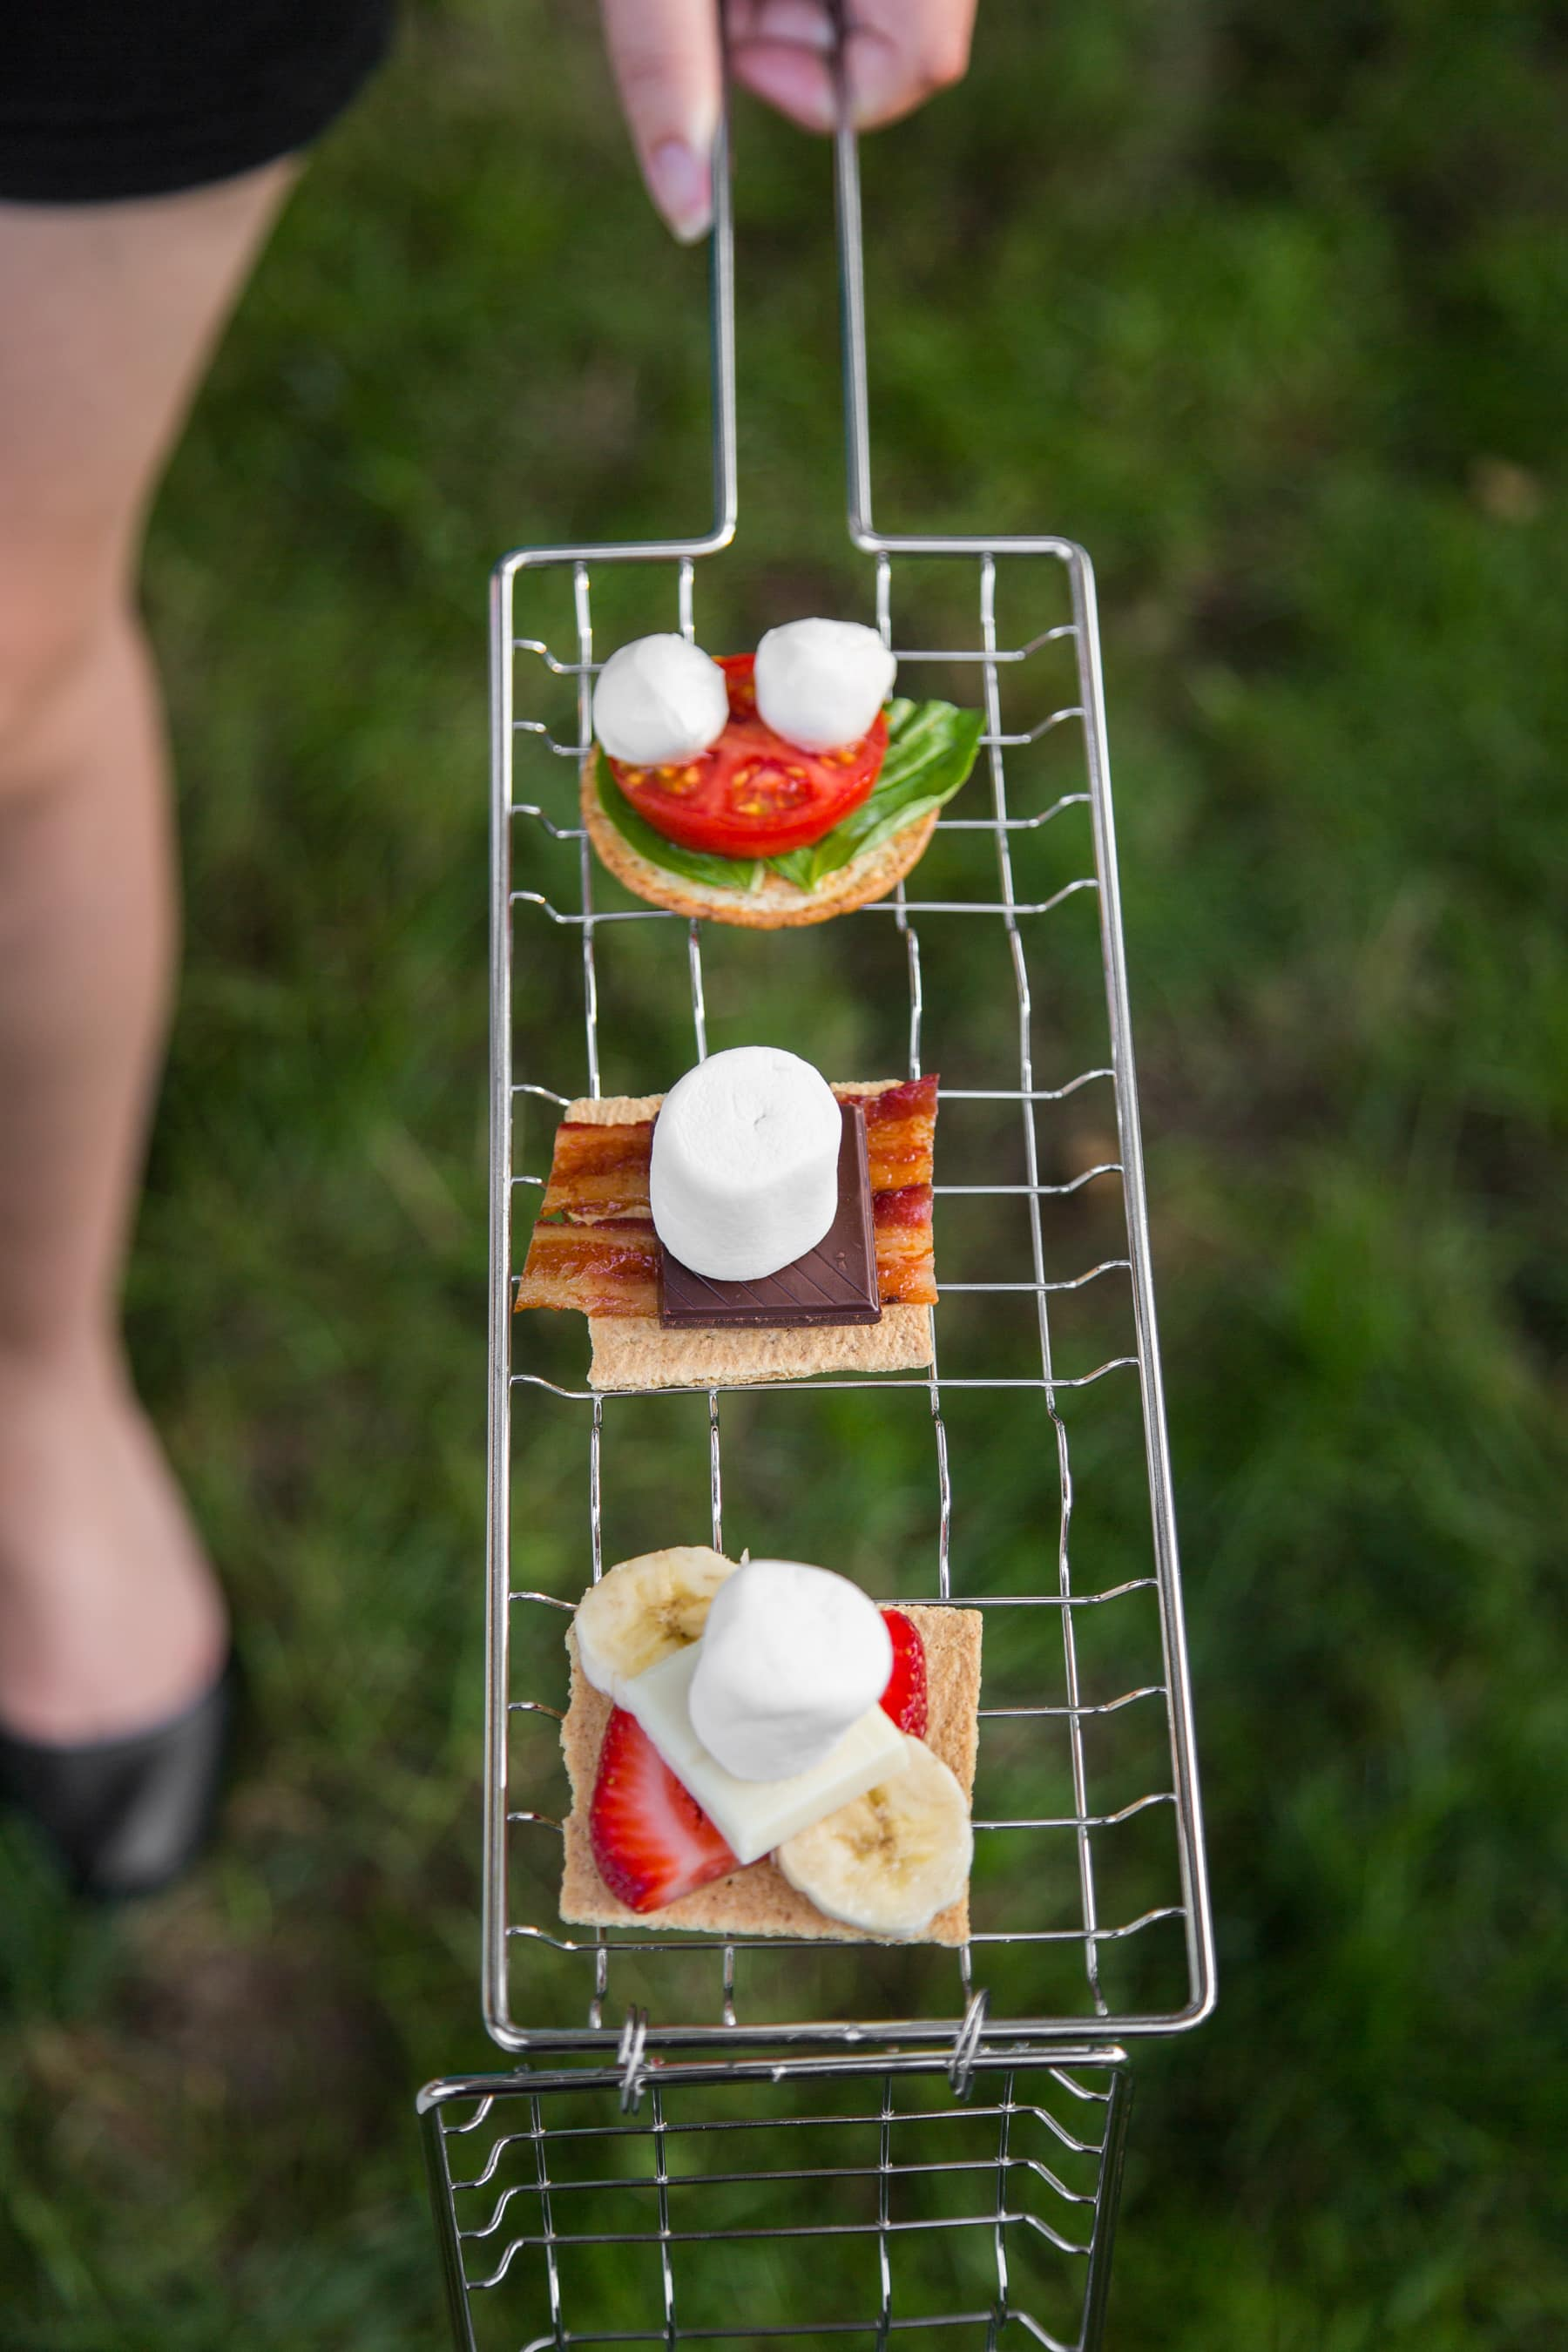 A Backyard S'mores Party: gallery image 19